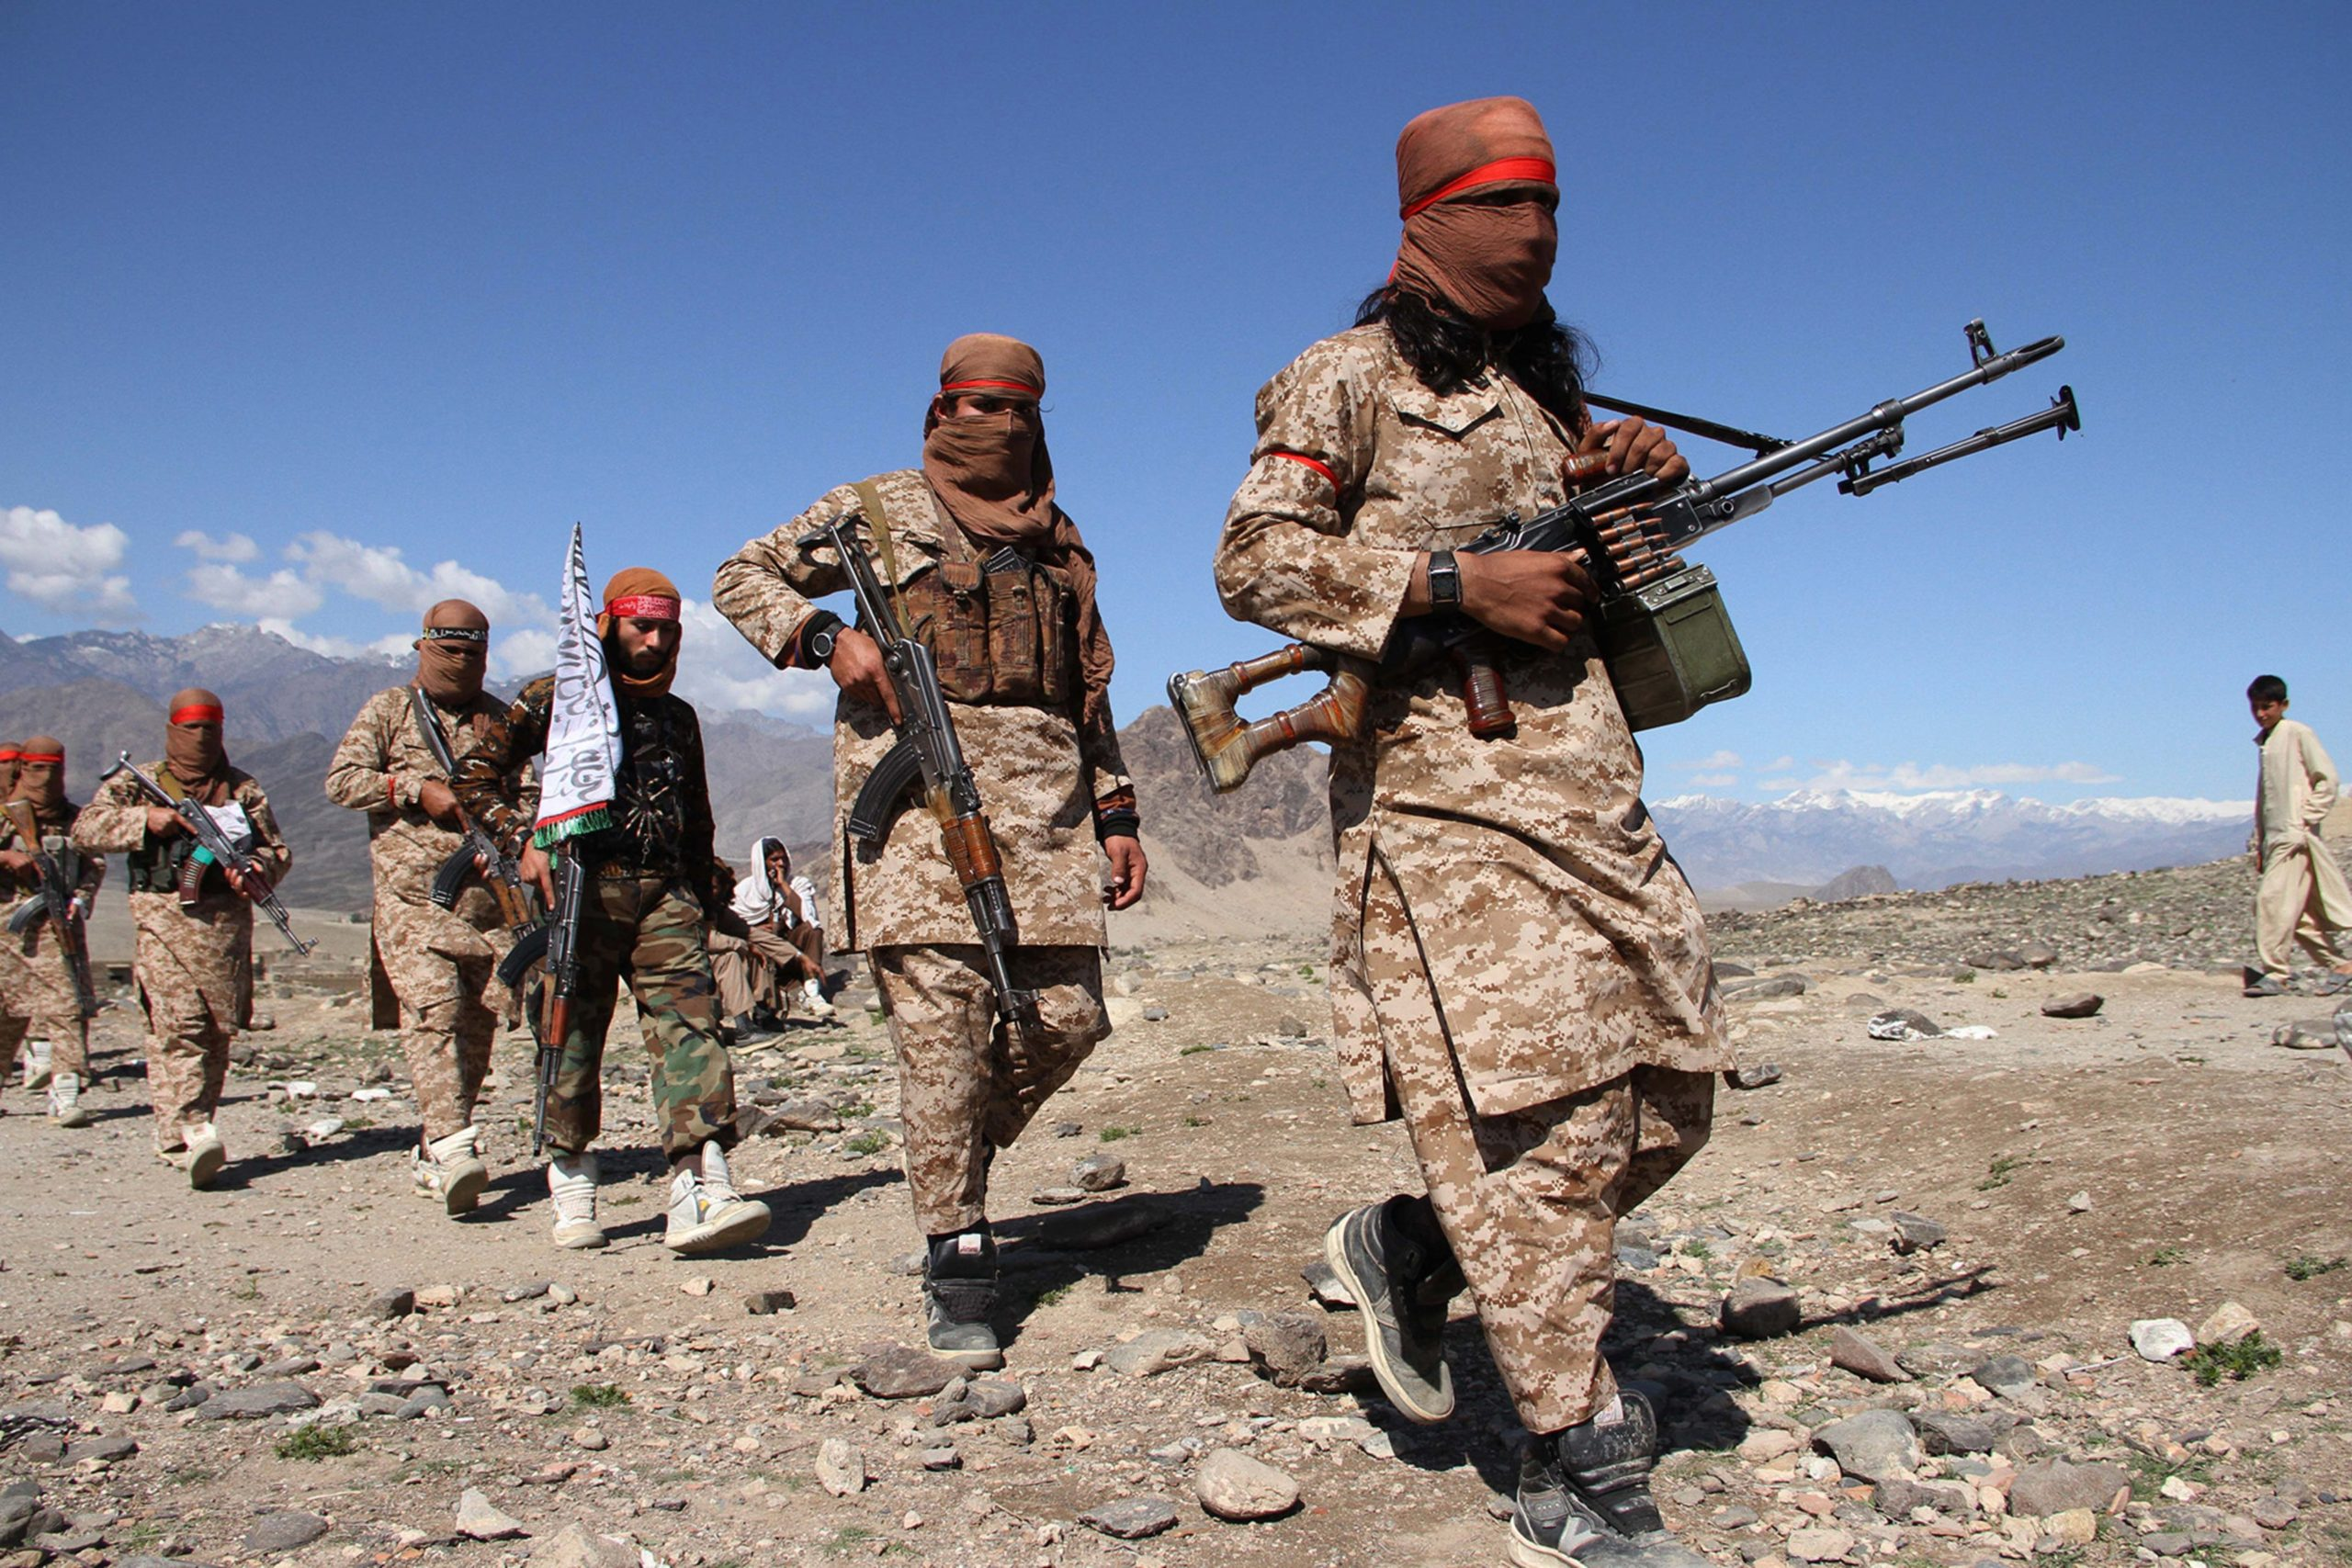 The Taliban Story:  Rivalries, Coups and Making of a Fragmented Afghanistan (Part 2)